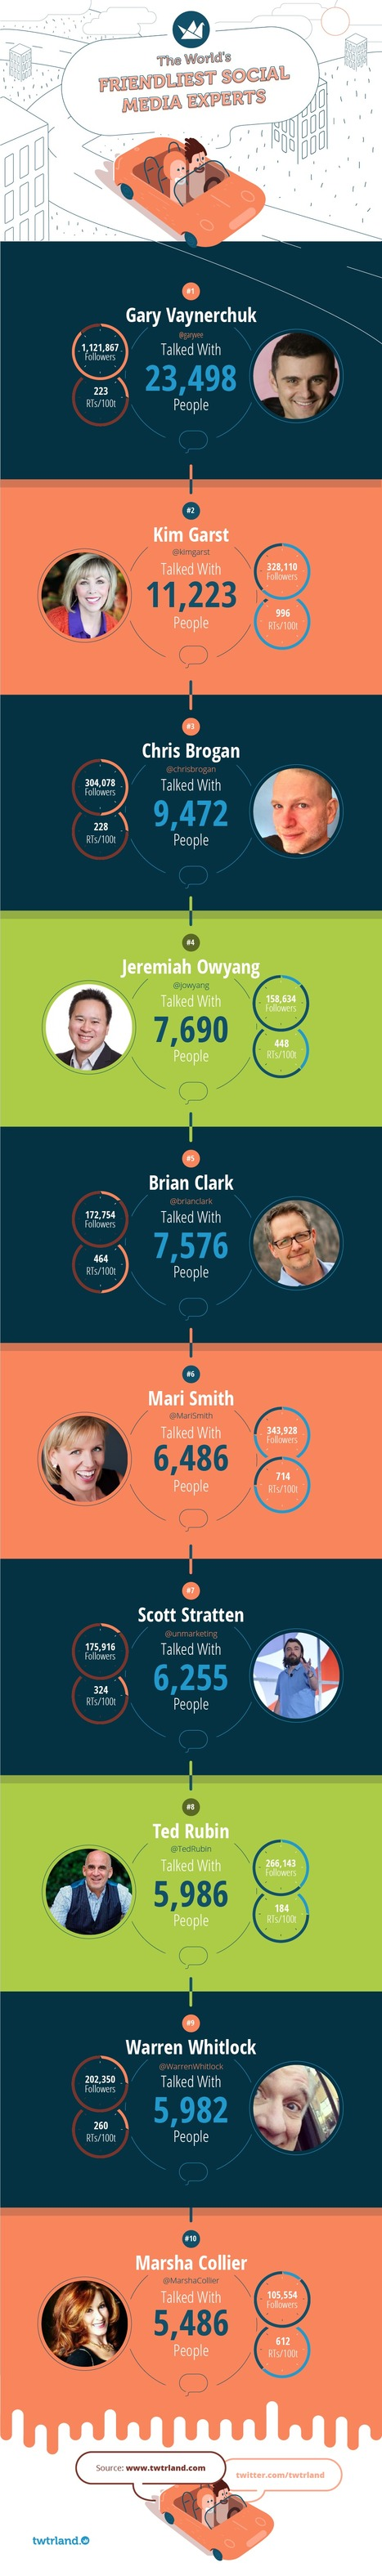 The World's Friendliest Influential Social Media Experts #infographic | MarketingHits | Scoop.it